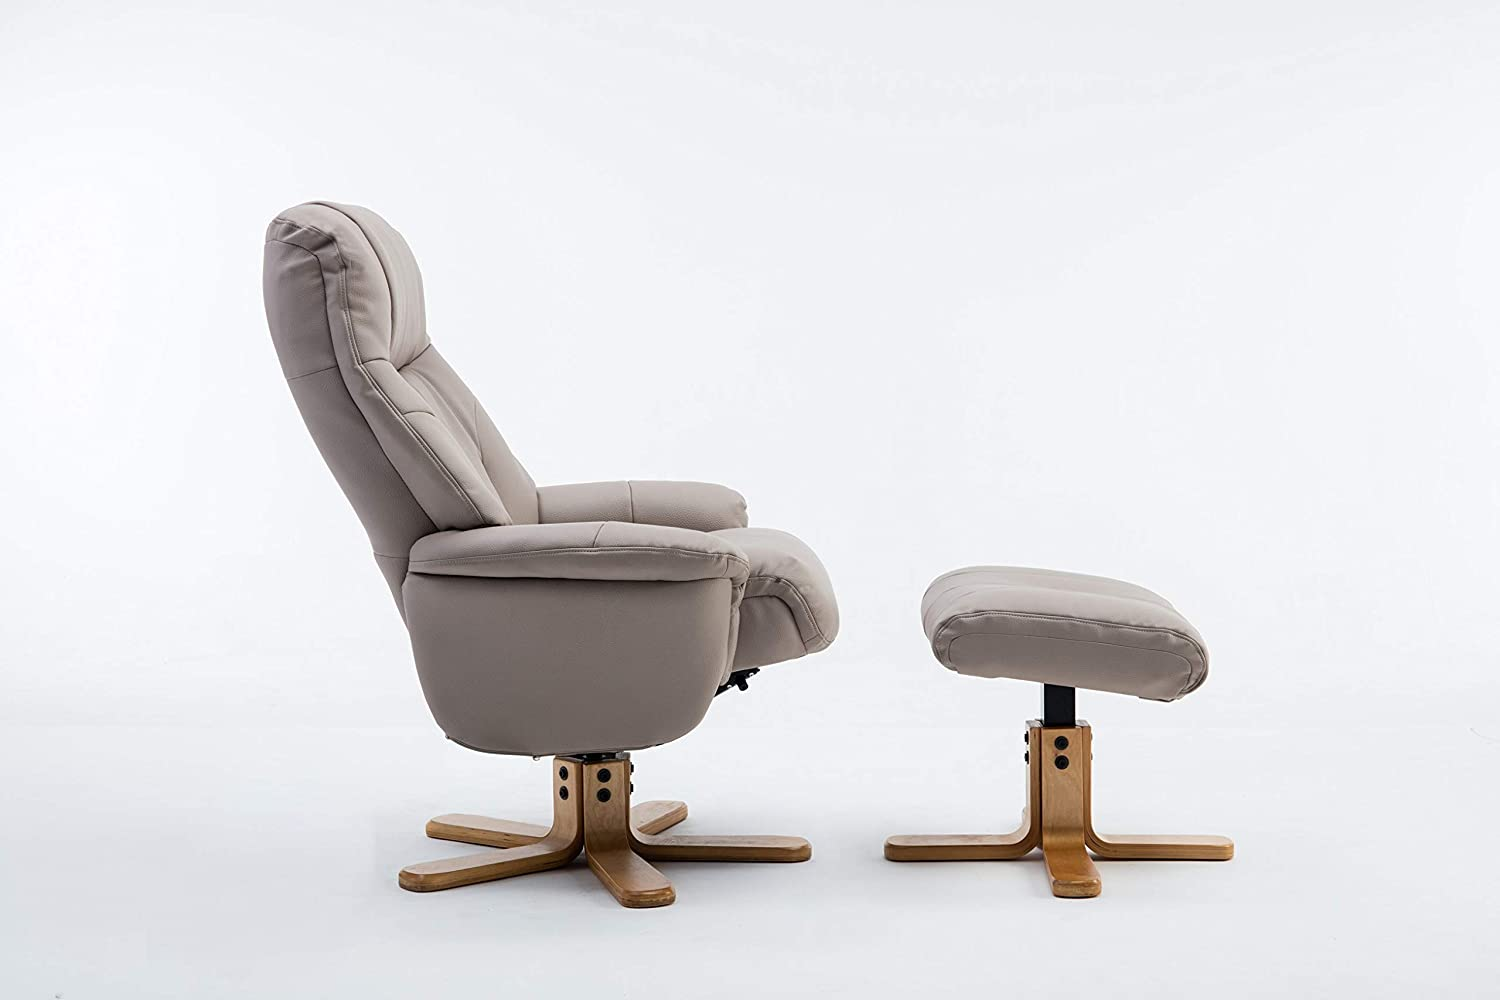 Amazing Gfa Dubai Faux Leather Pebble Plush Swivel Recliner Chair Onthecornerstone Fun Painted Chair Ideas Images Onthecornerstoneorg